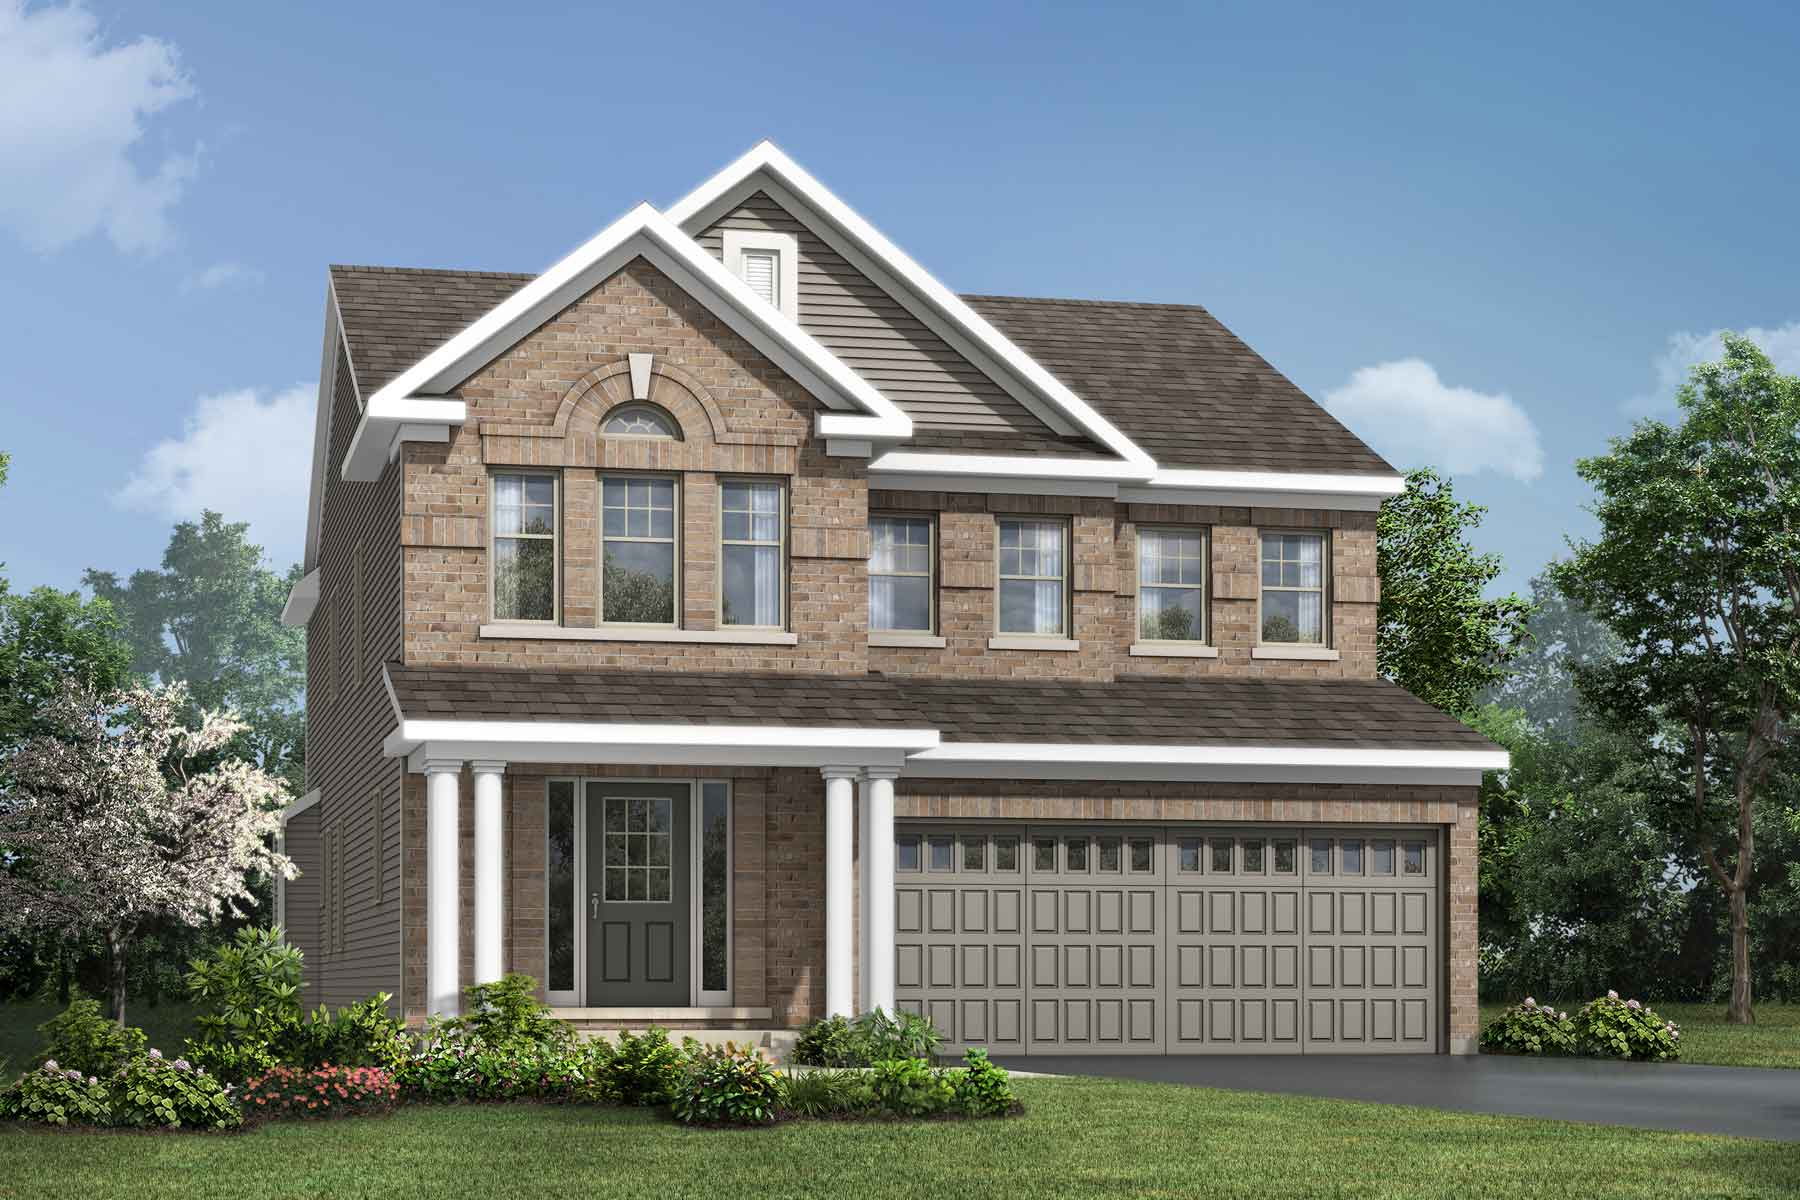 Sycamore Plan Elevation Front at Connections In Kanata in Kanata Ontario by Mattamy Homes